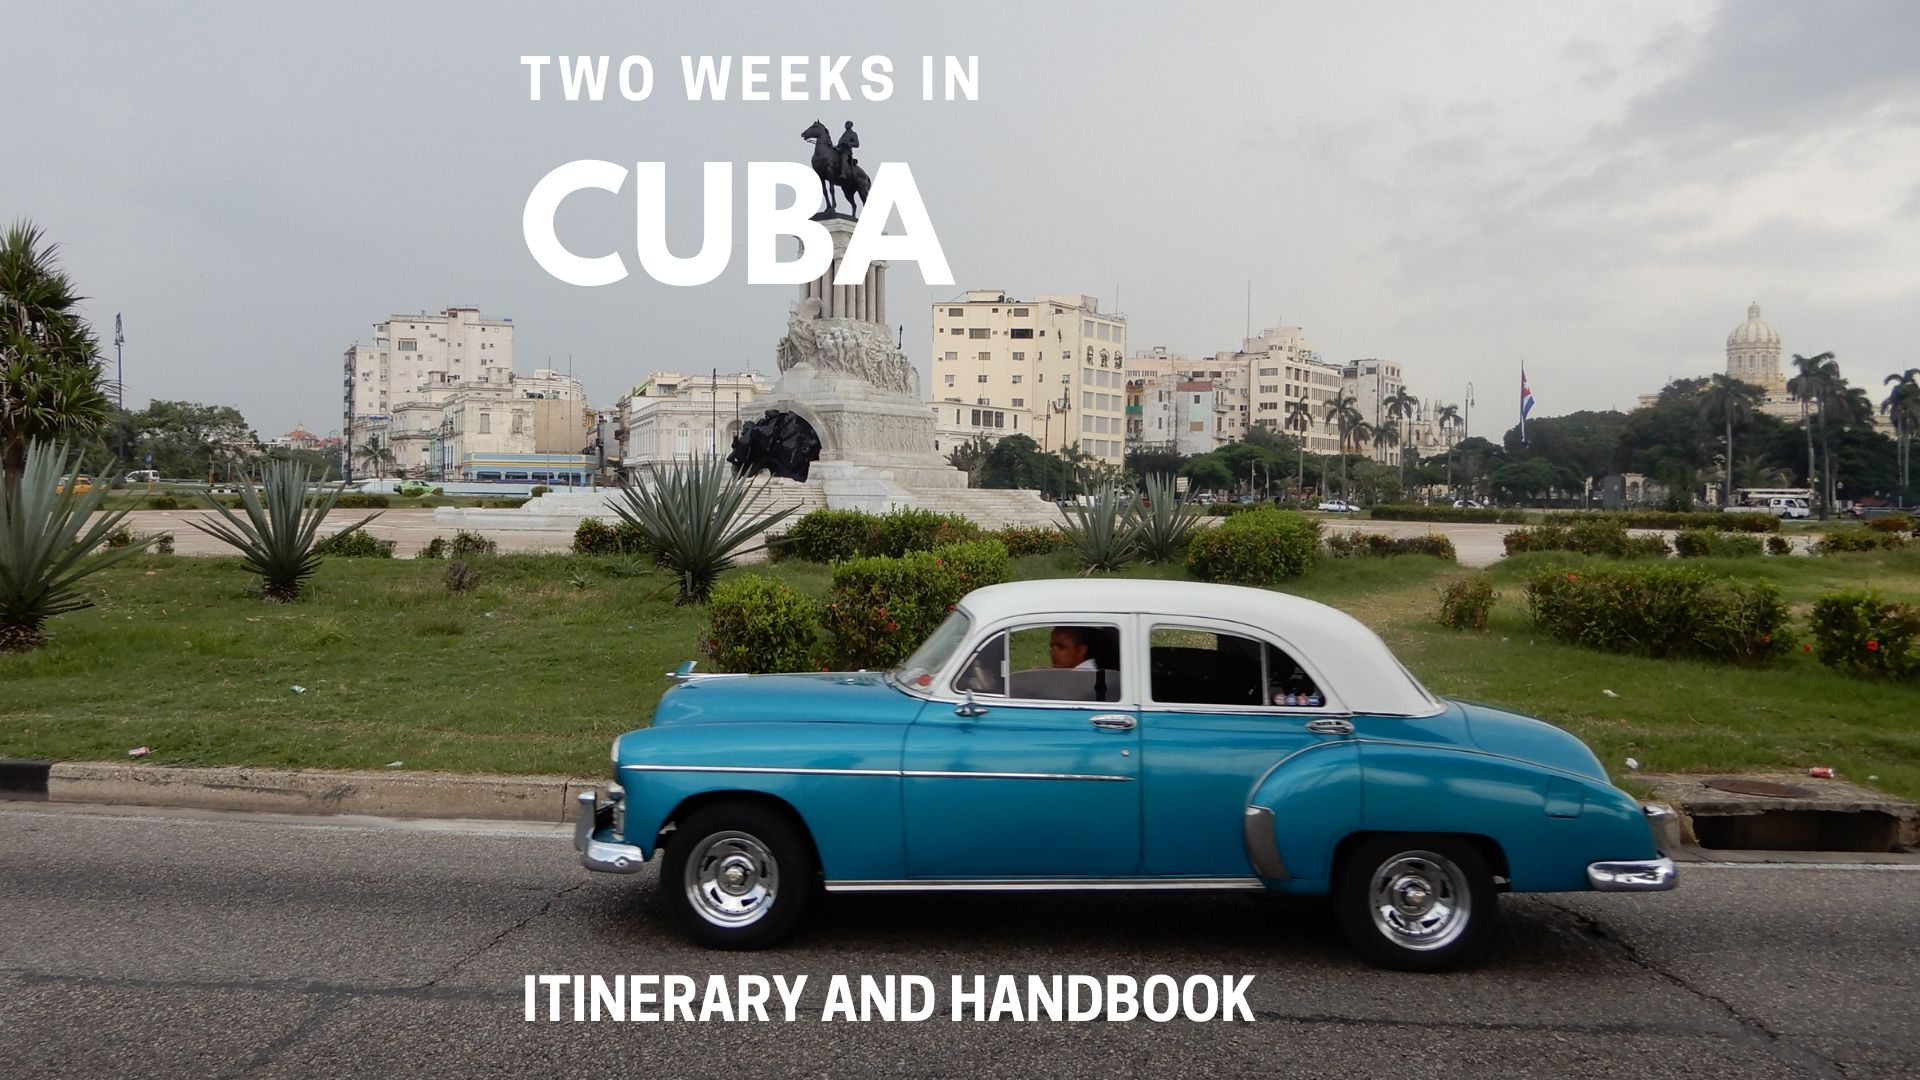 Two Weeks in Cuba Itinerary